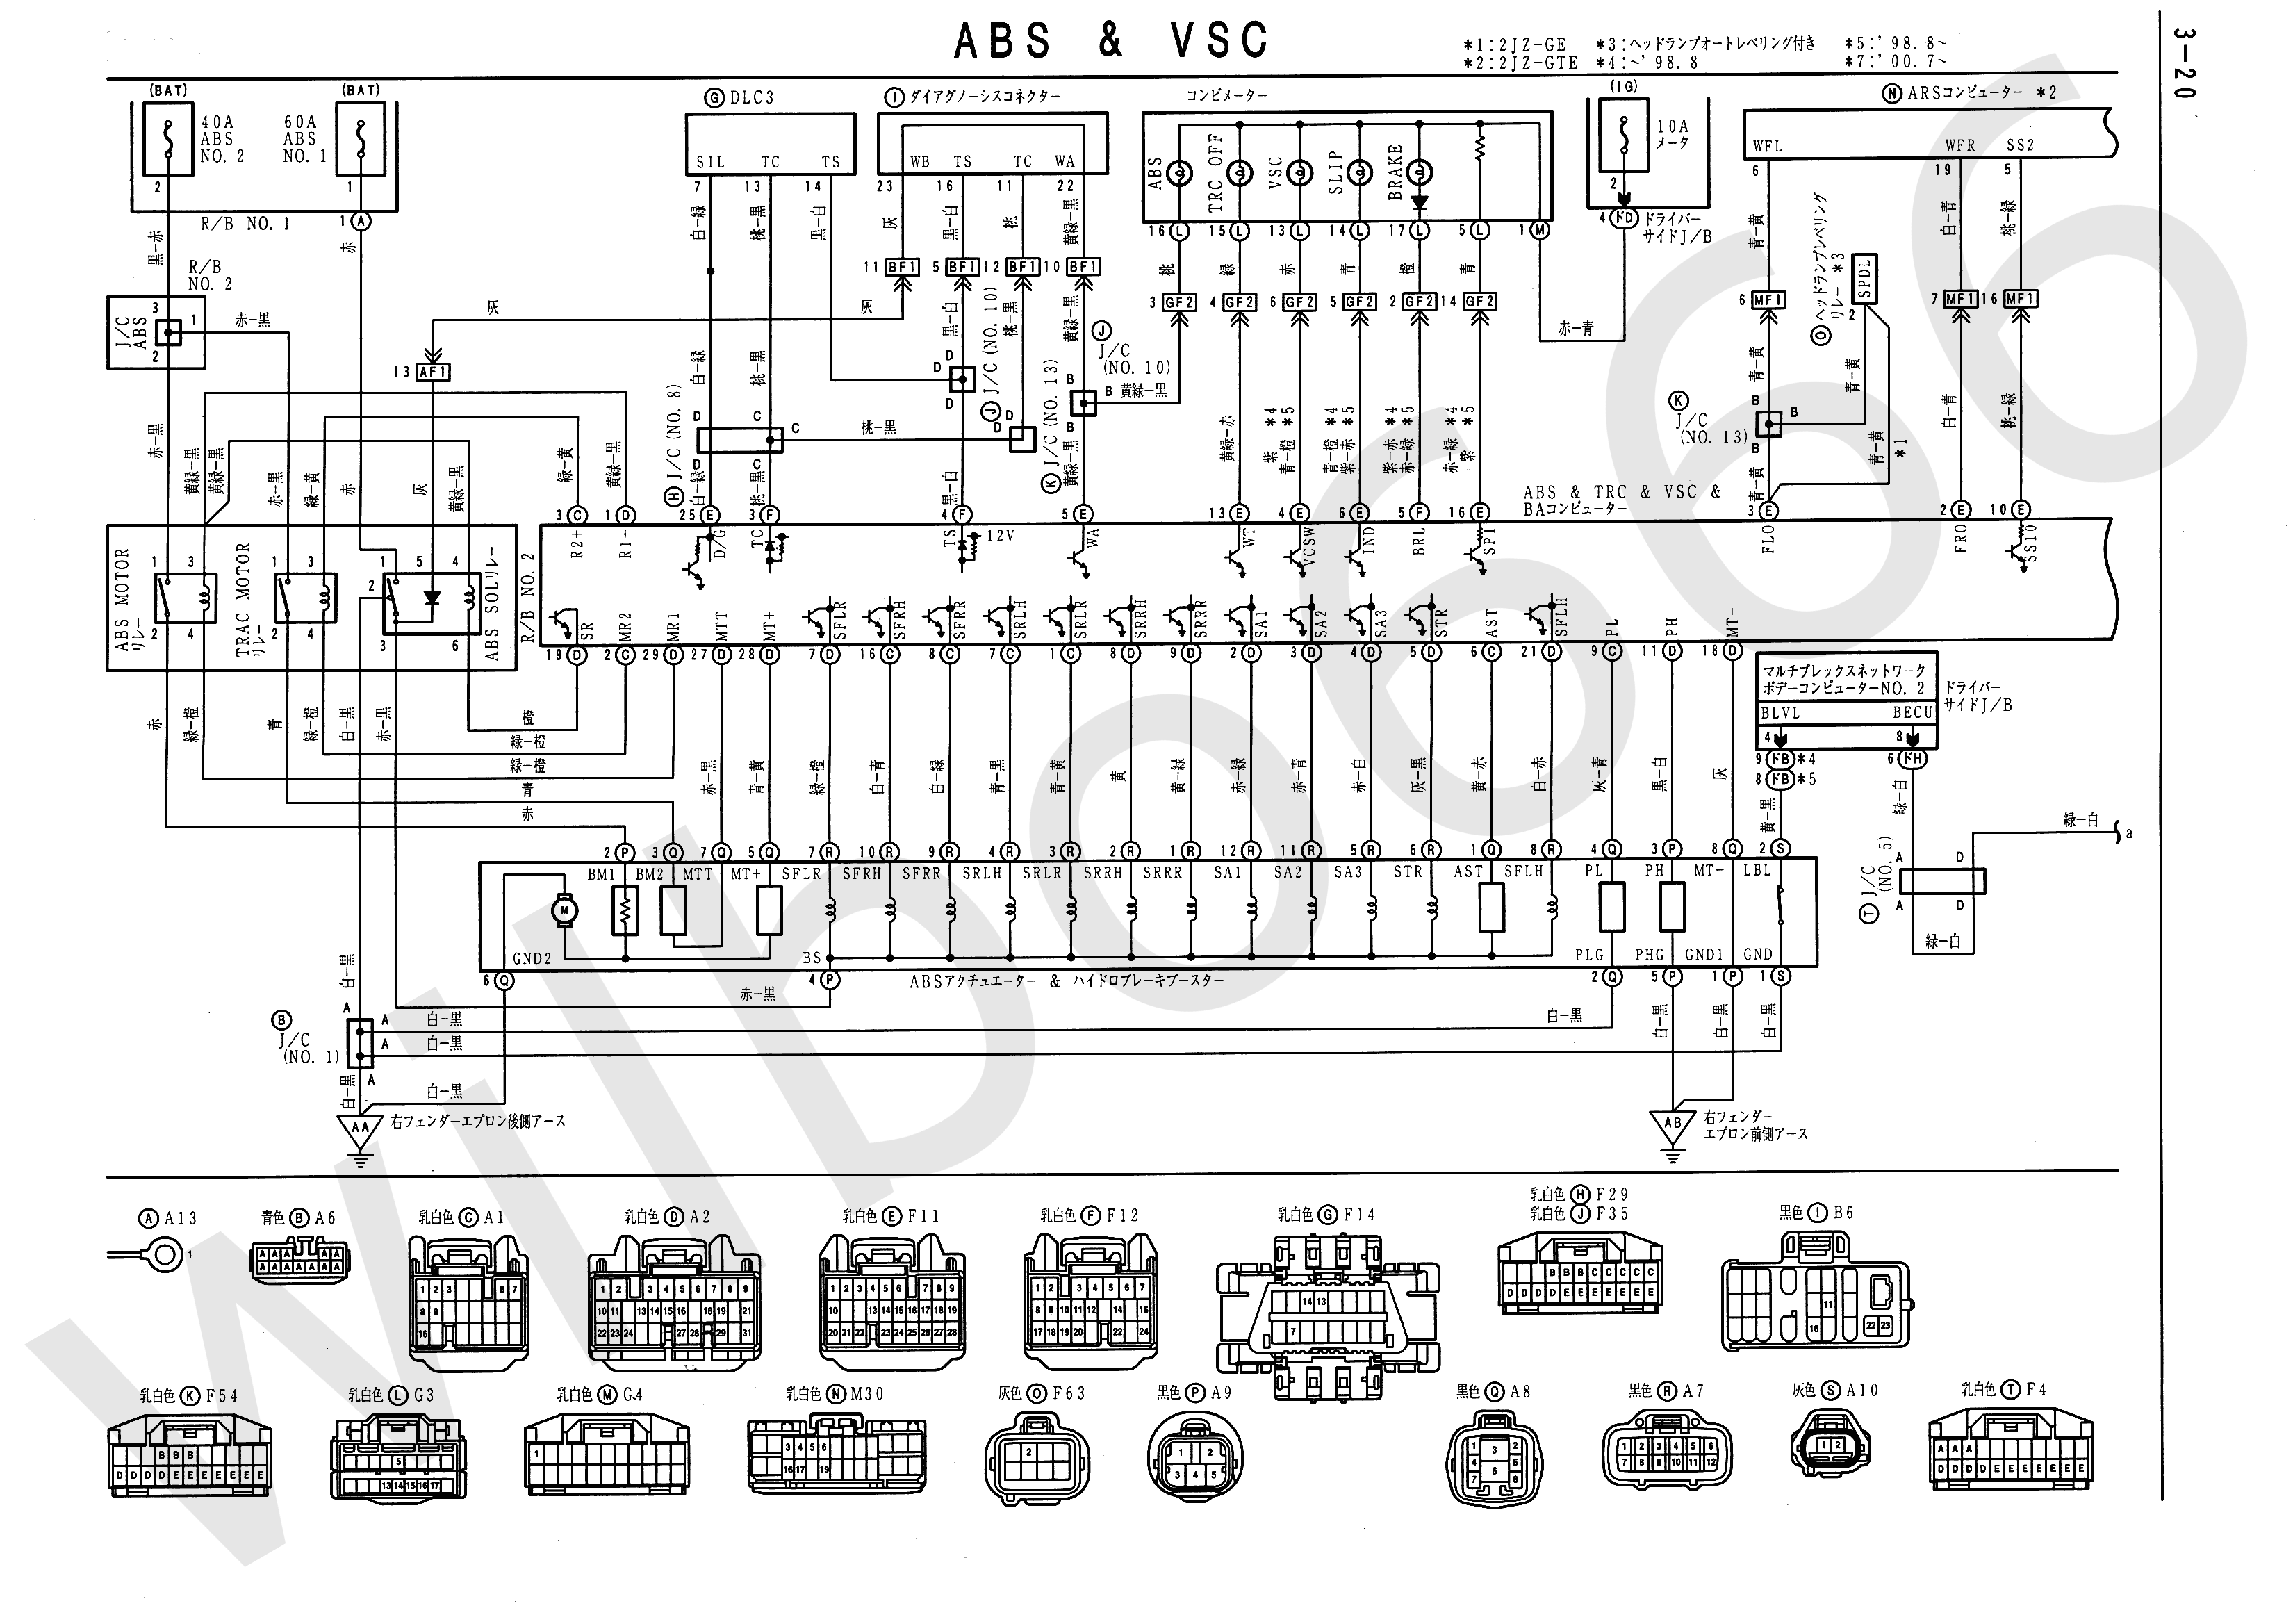 JZS161 Electrical Wiring Diagram 6748505 3 20 wilbo666 2jz gte vvti jzs161 aristo engine wiring 2jzgte vvti wiring harness at suagrazia.org